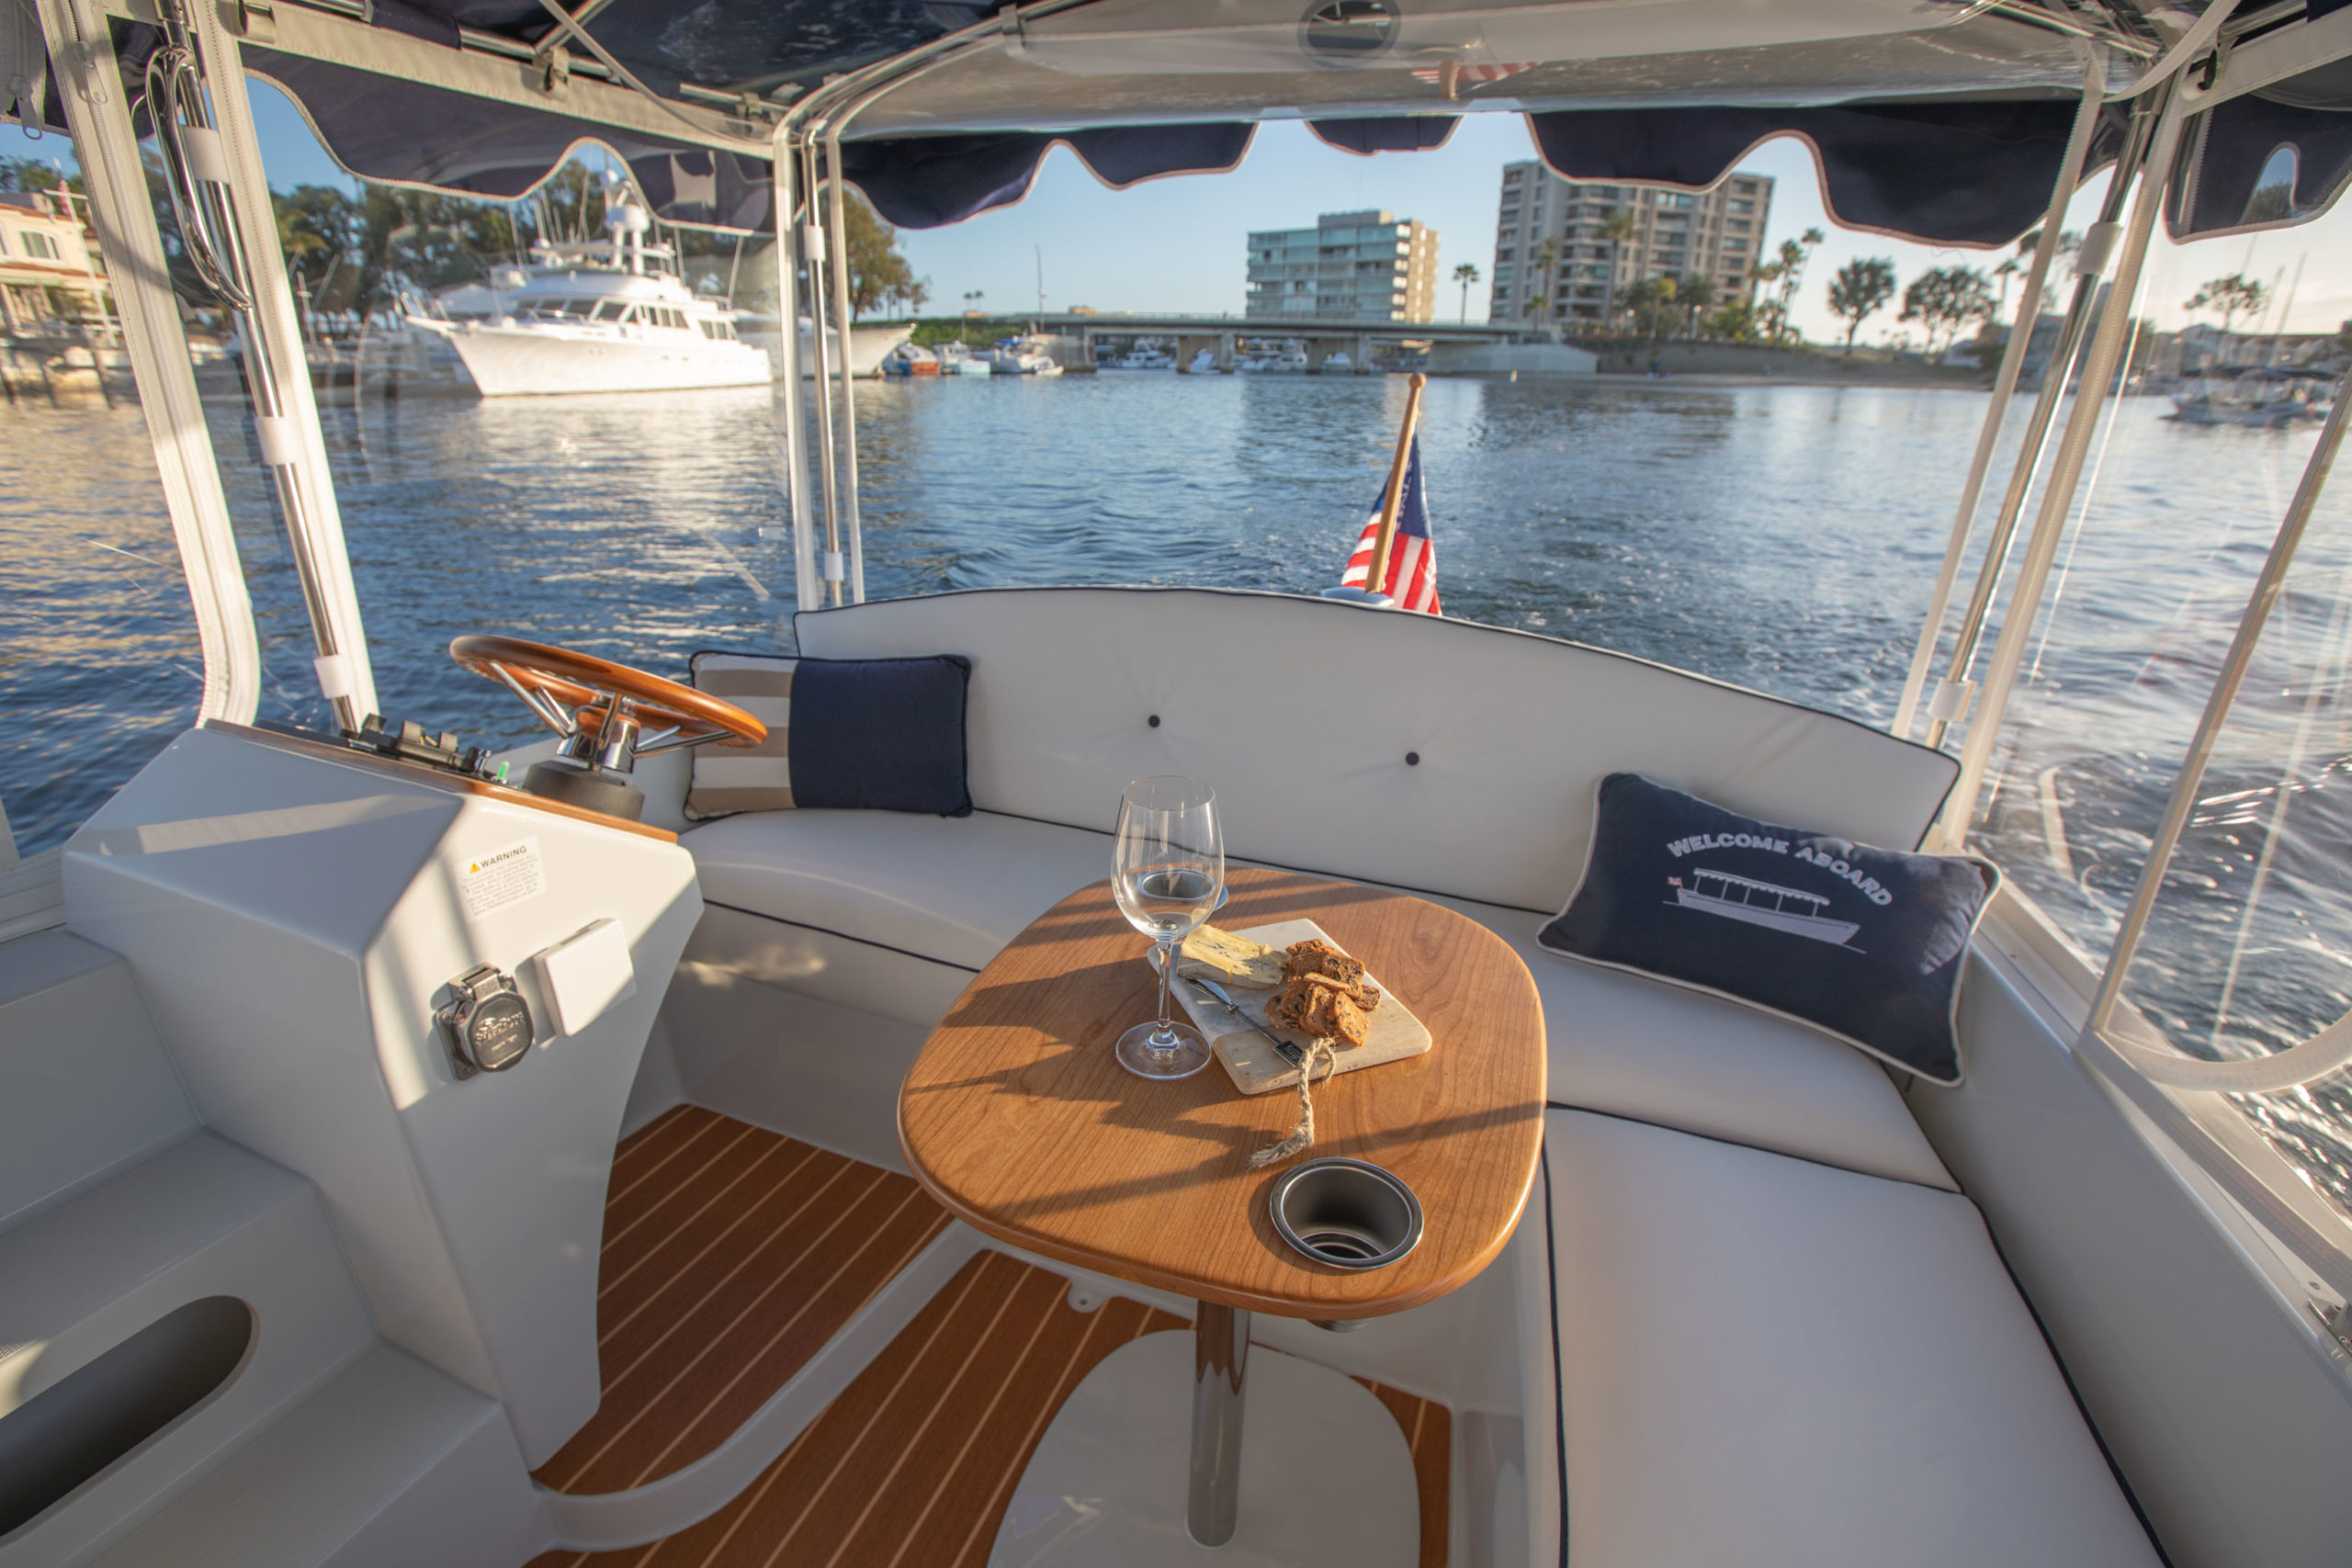 Duffy-Electric-Boats-18-Snug-Harbor-Interior-2020-22